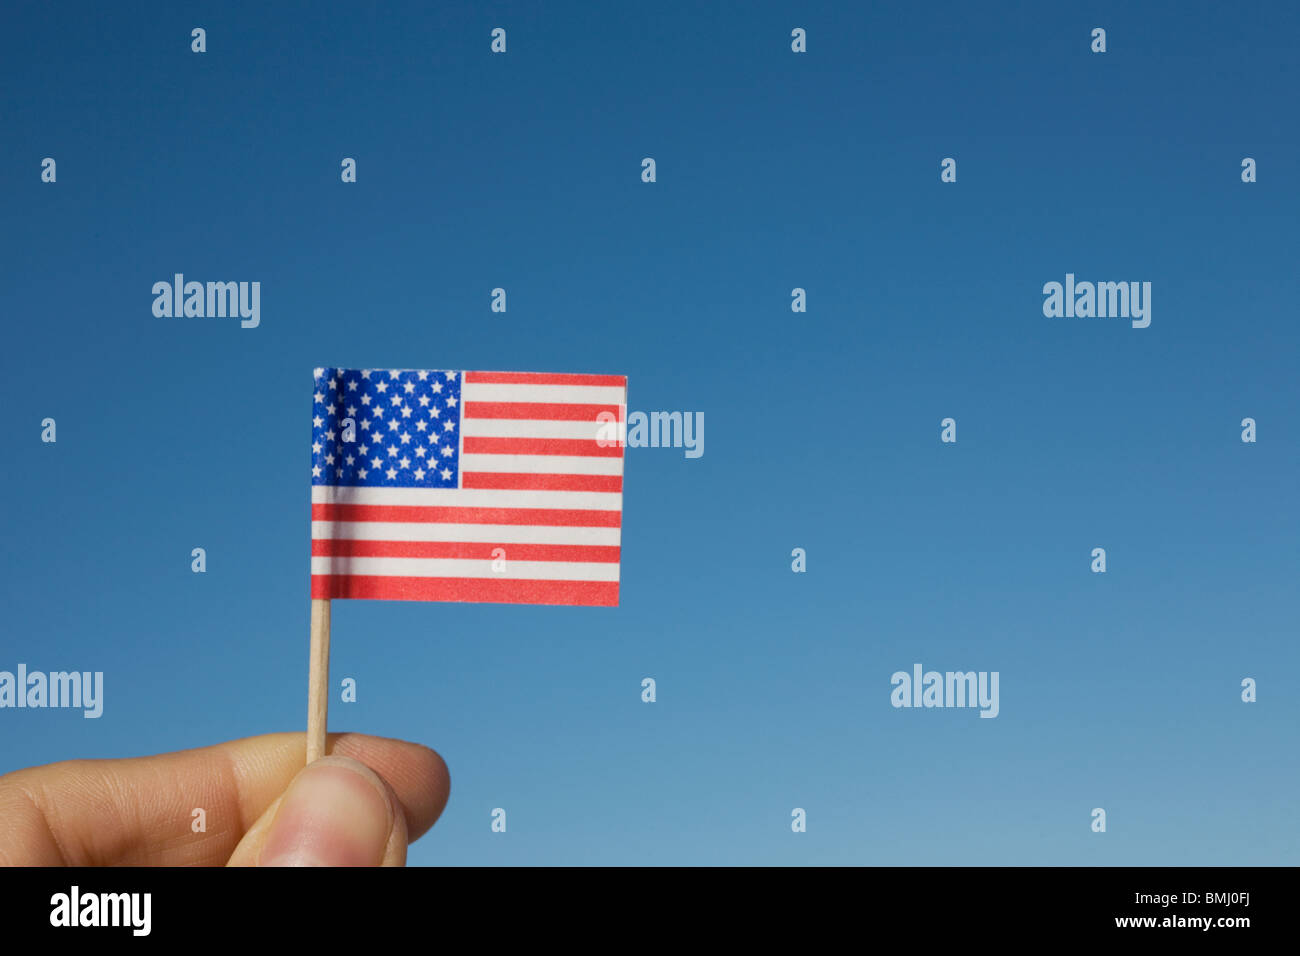 Hand holding small American flag - Stock Image